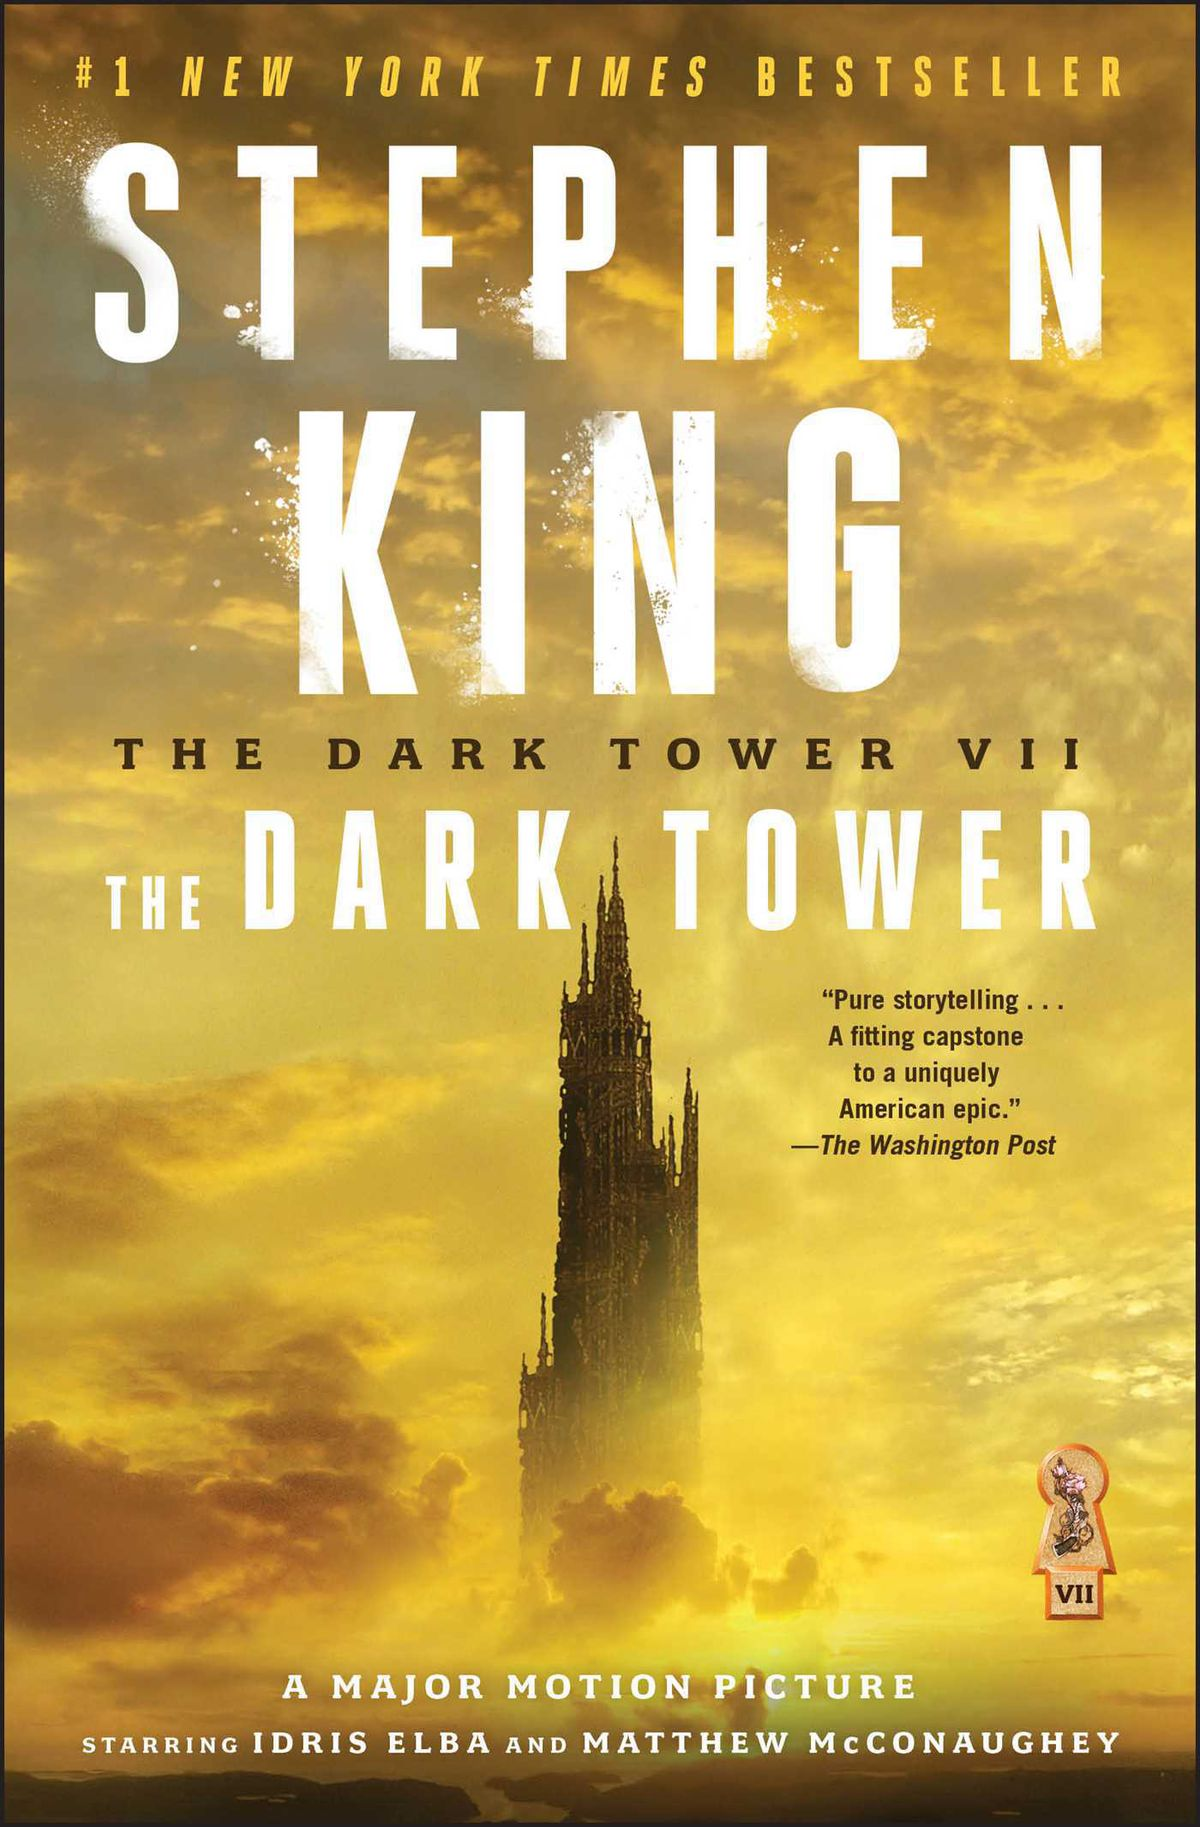 The cover of Volume 7 of the Dark Tower series.